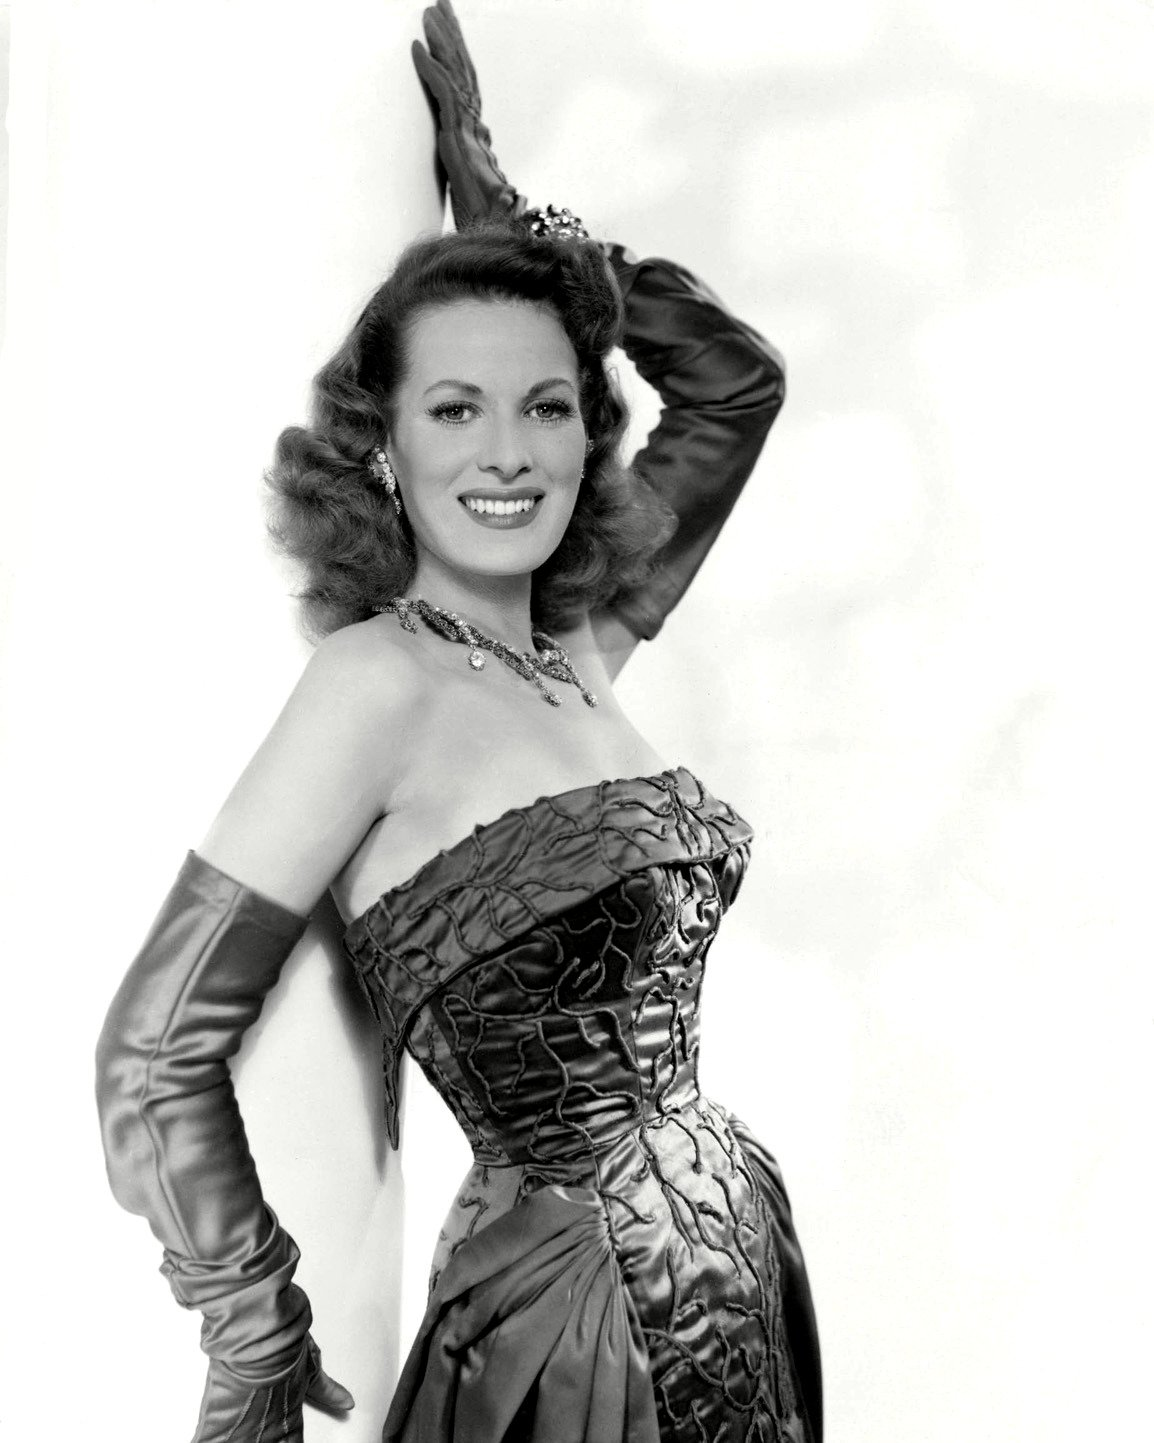 MAUREEN O'HARA IN 'FIRE OVER AFRICA' (MALAGA) - 8X10 PUBLICITY PHOTO (ZY-006)